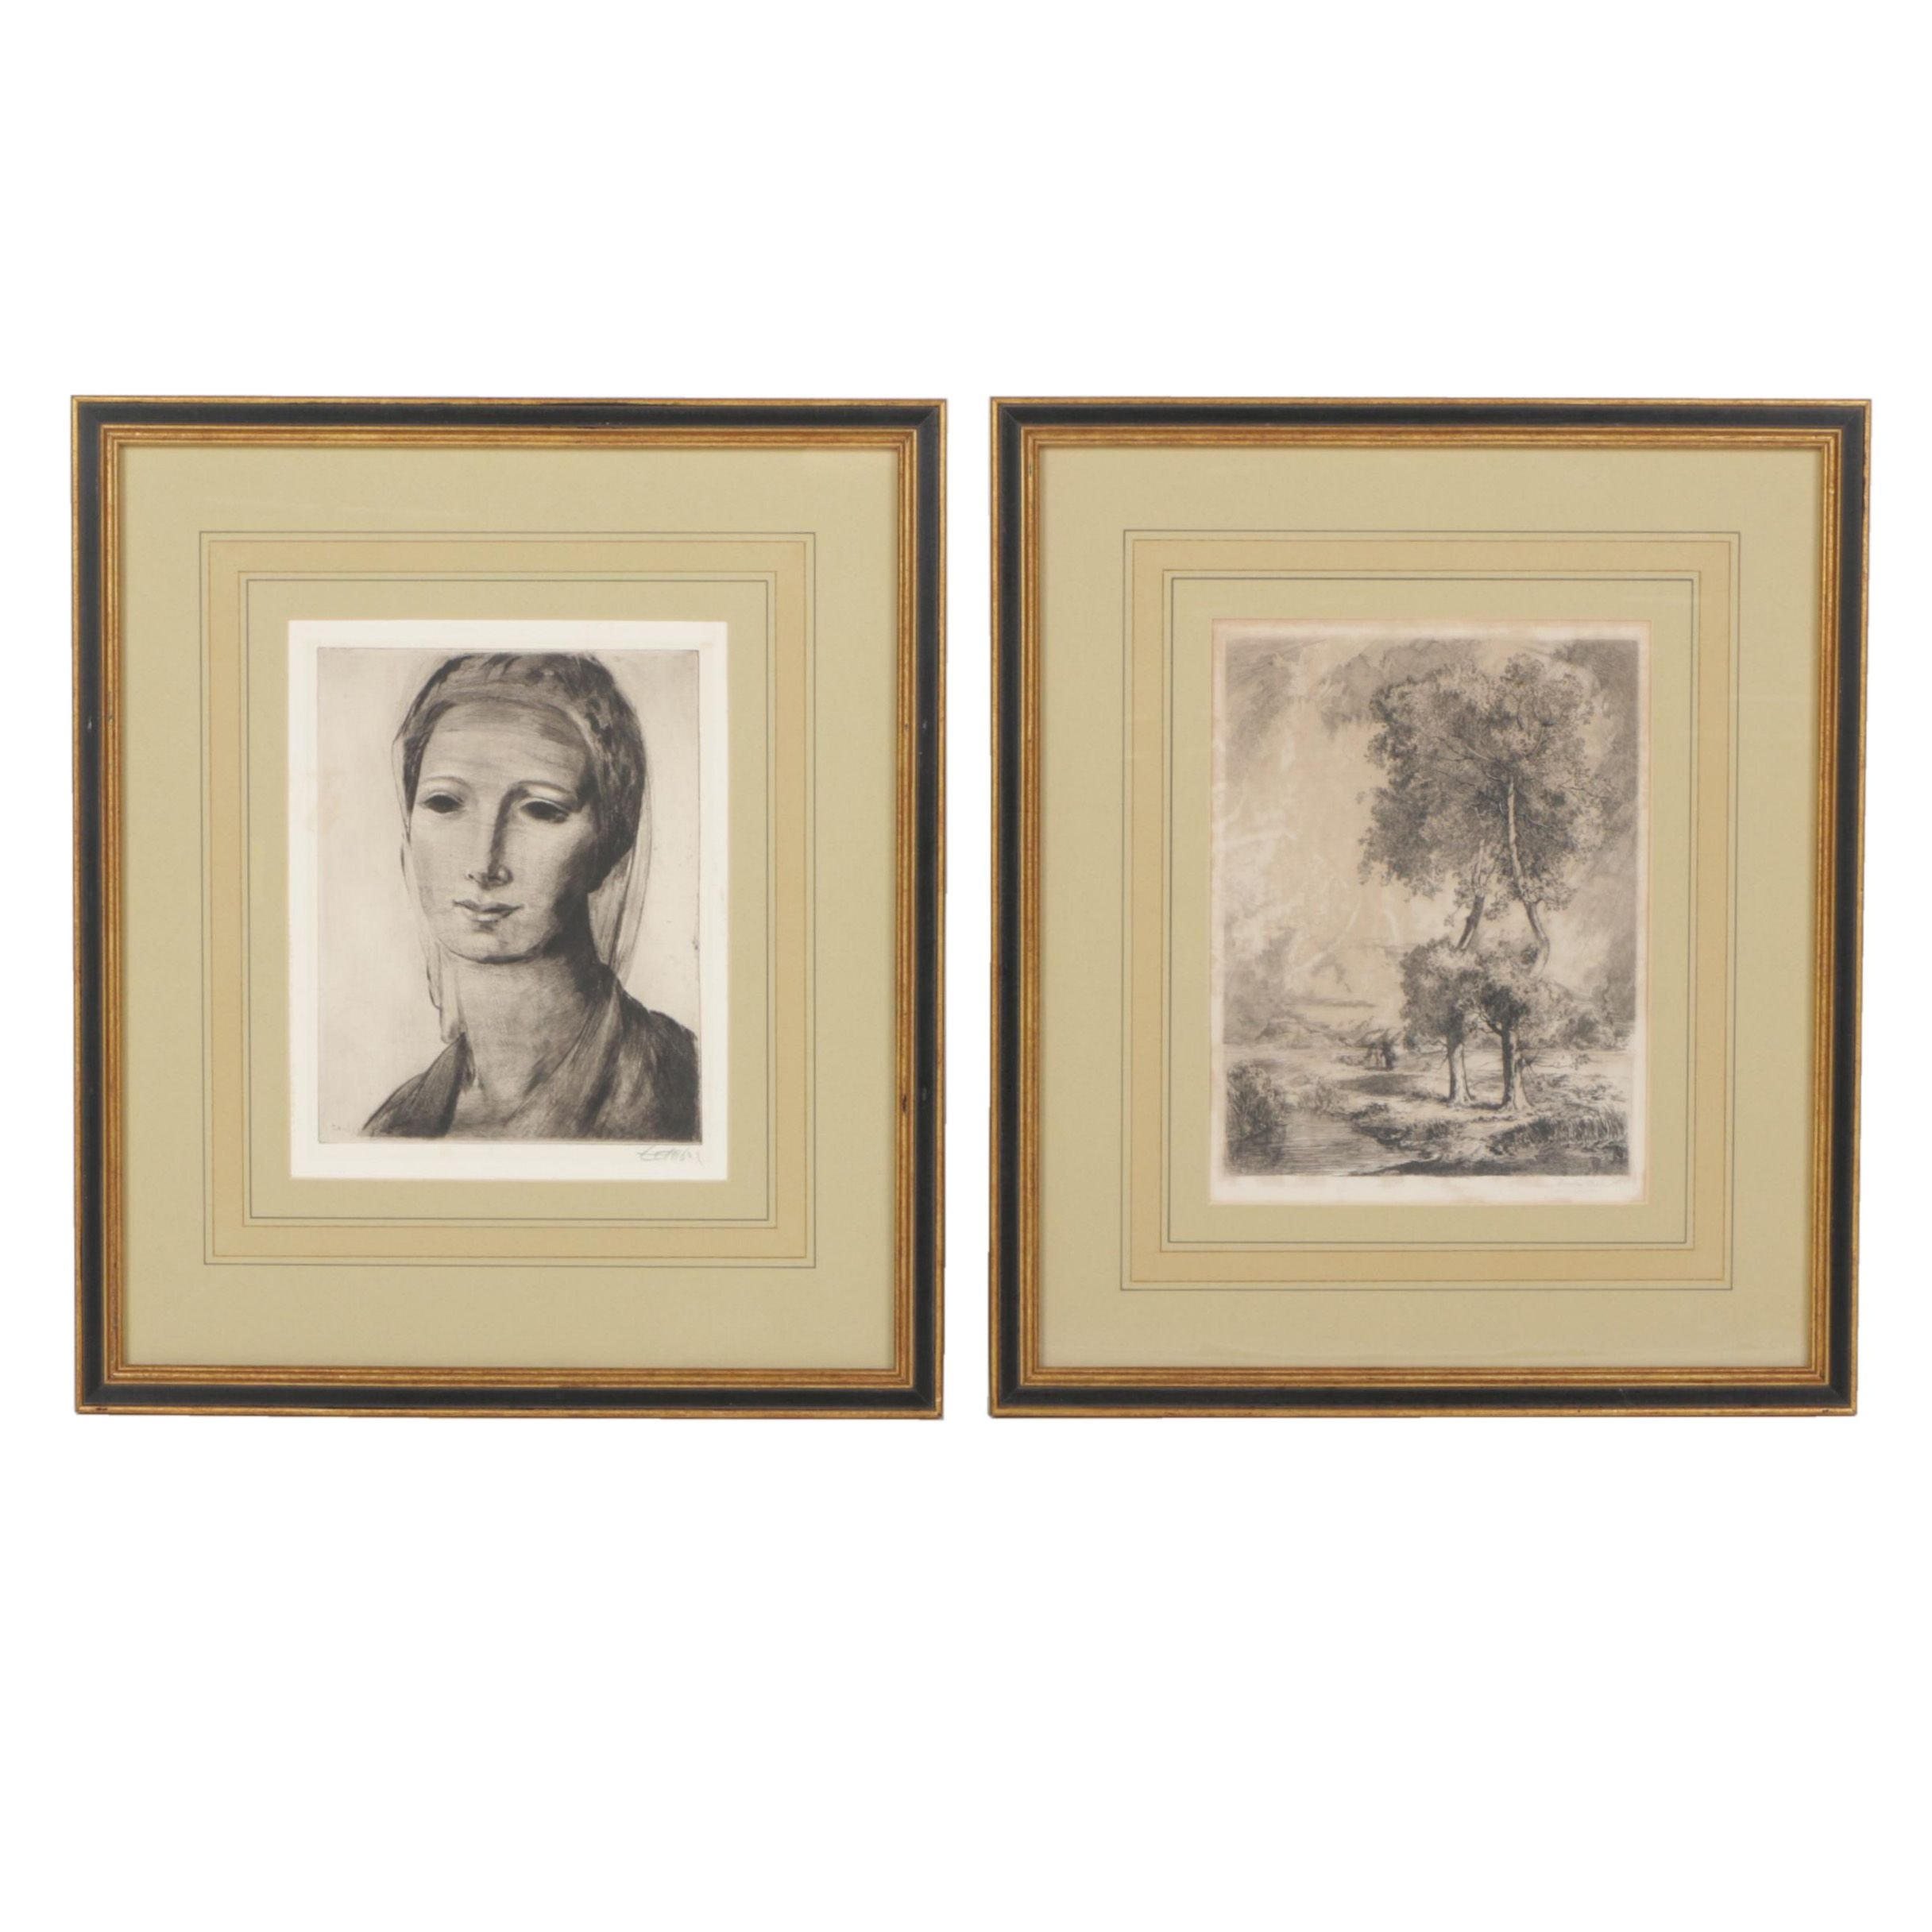 Louis Orr and Frederic Taubes Etchings on Paper